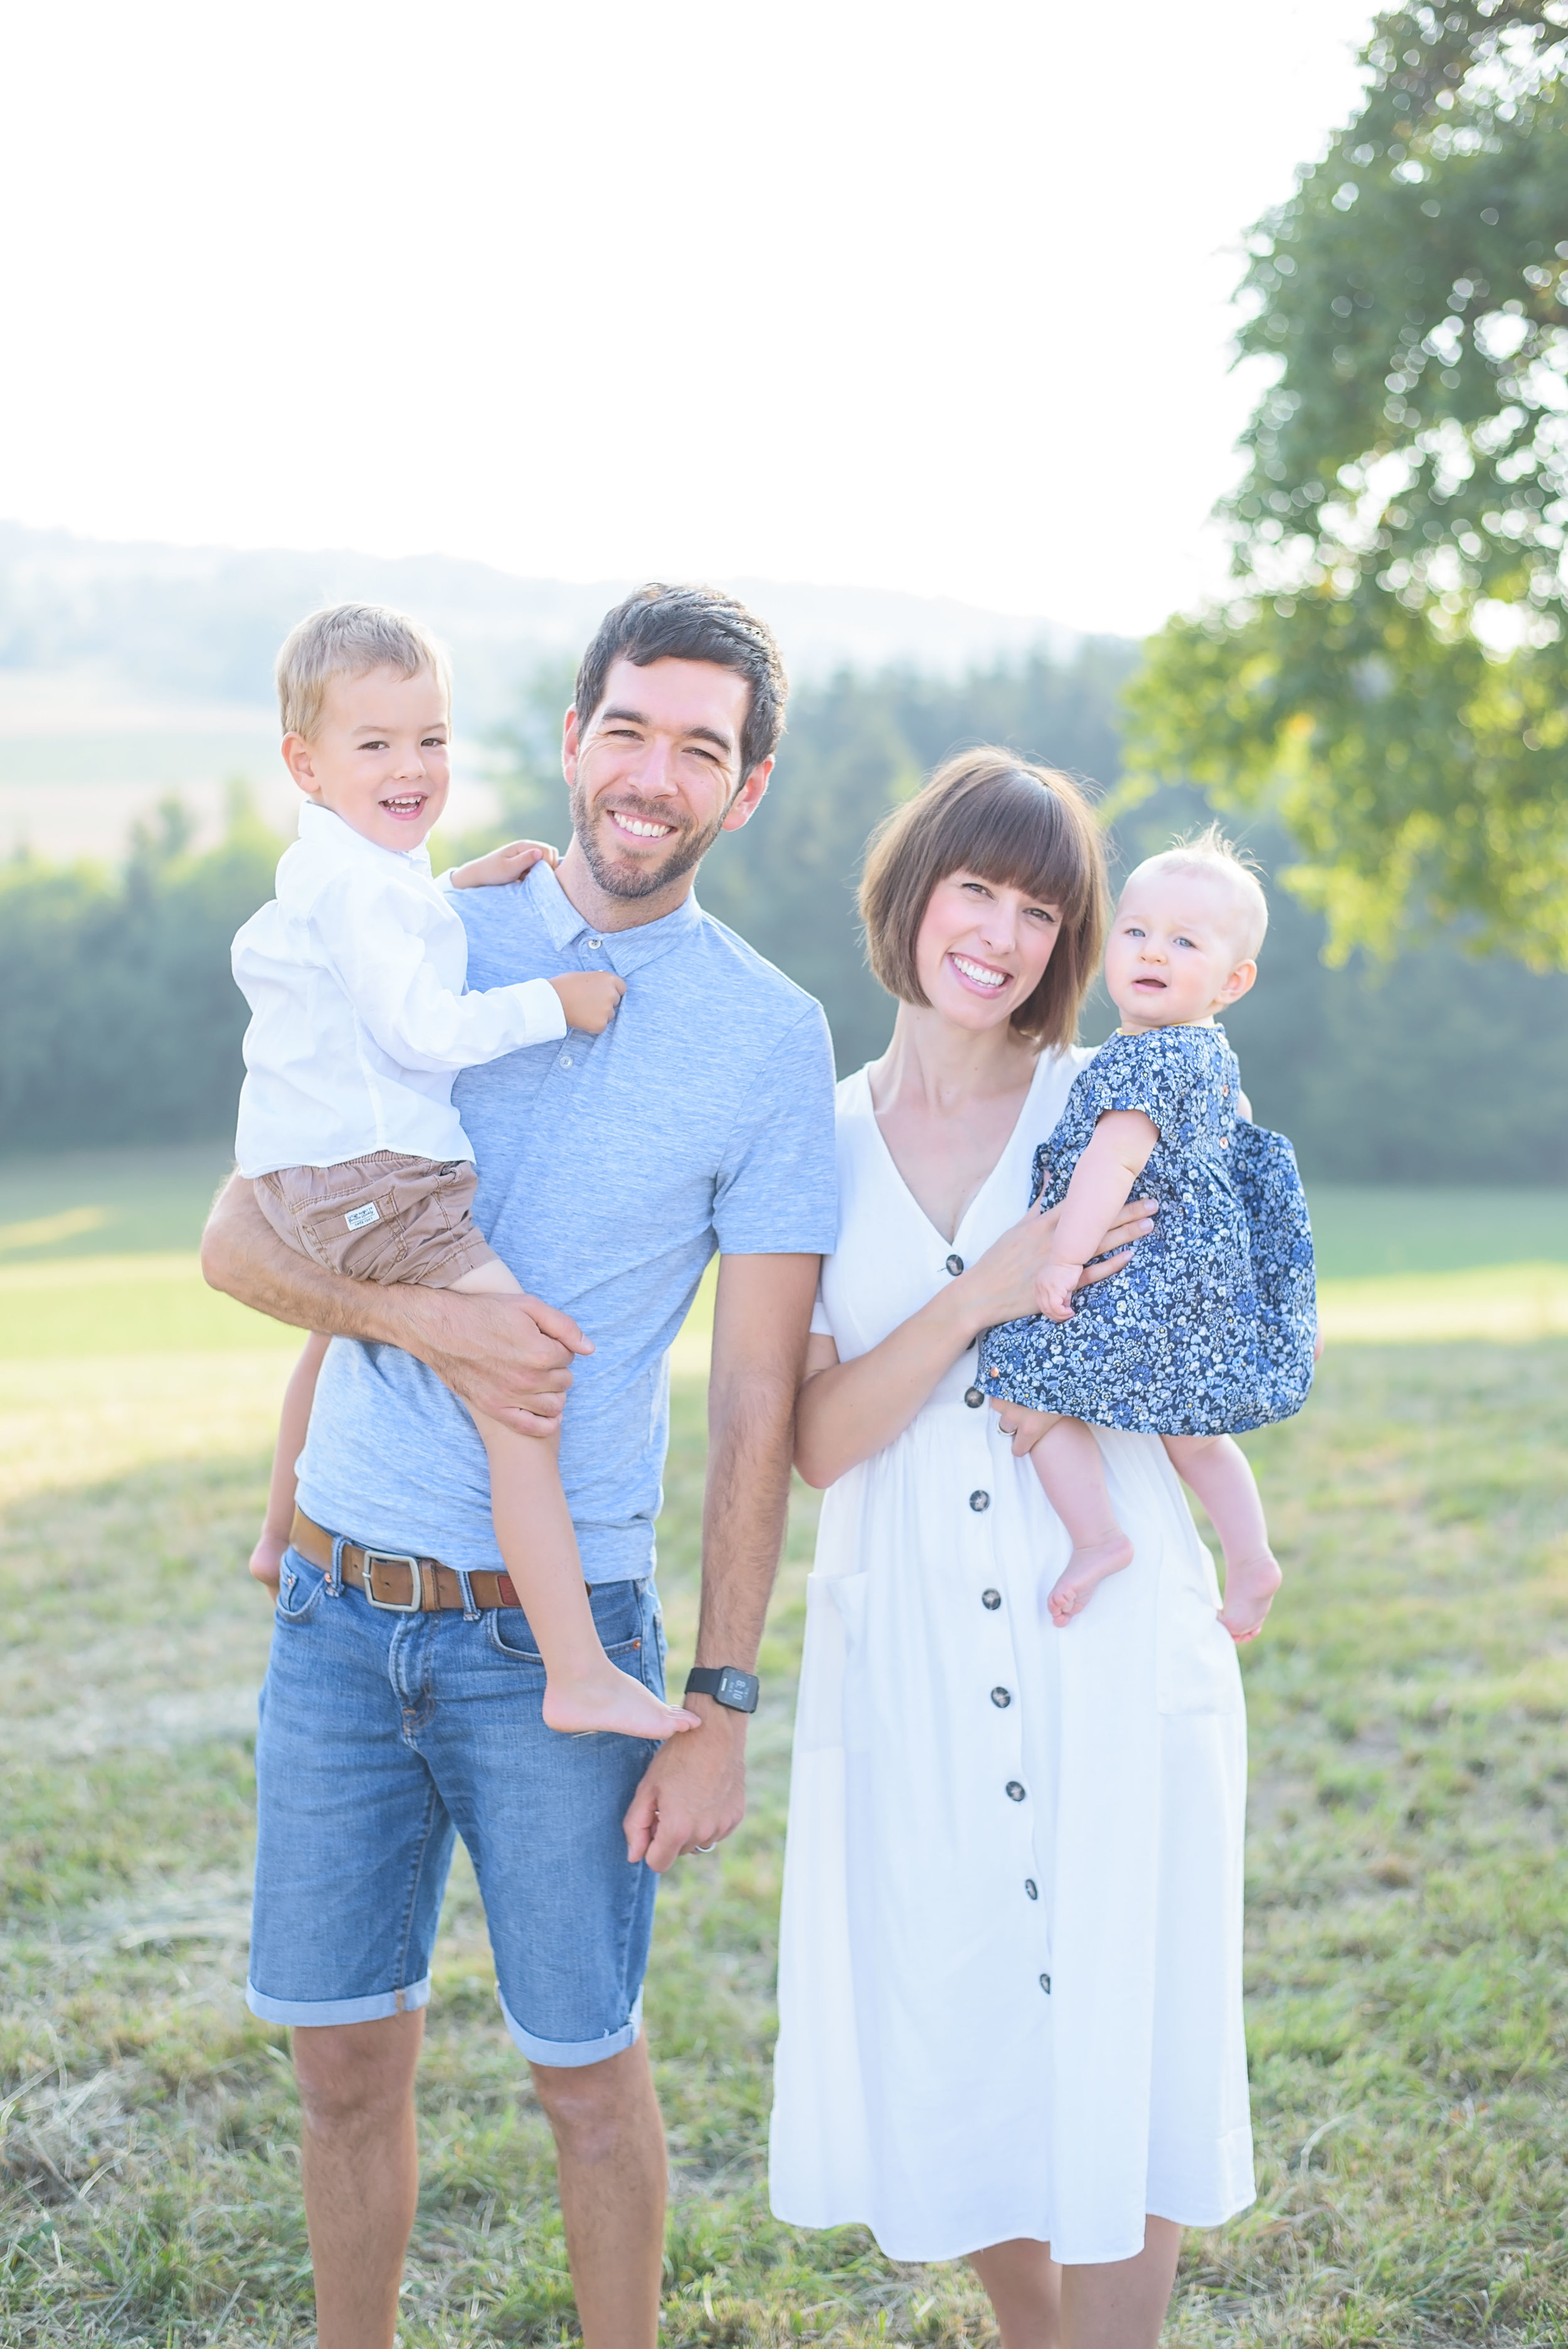 Best family lifestyle photographers